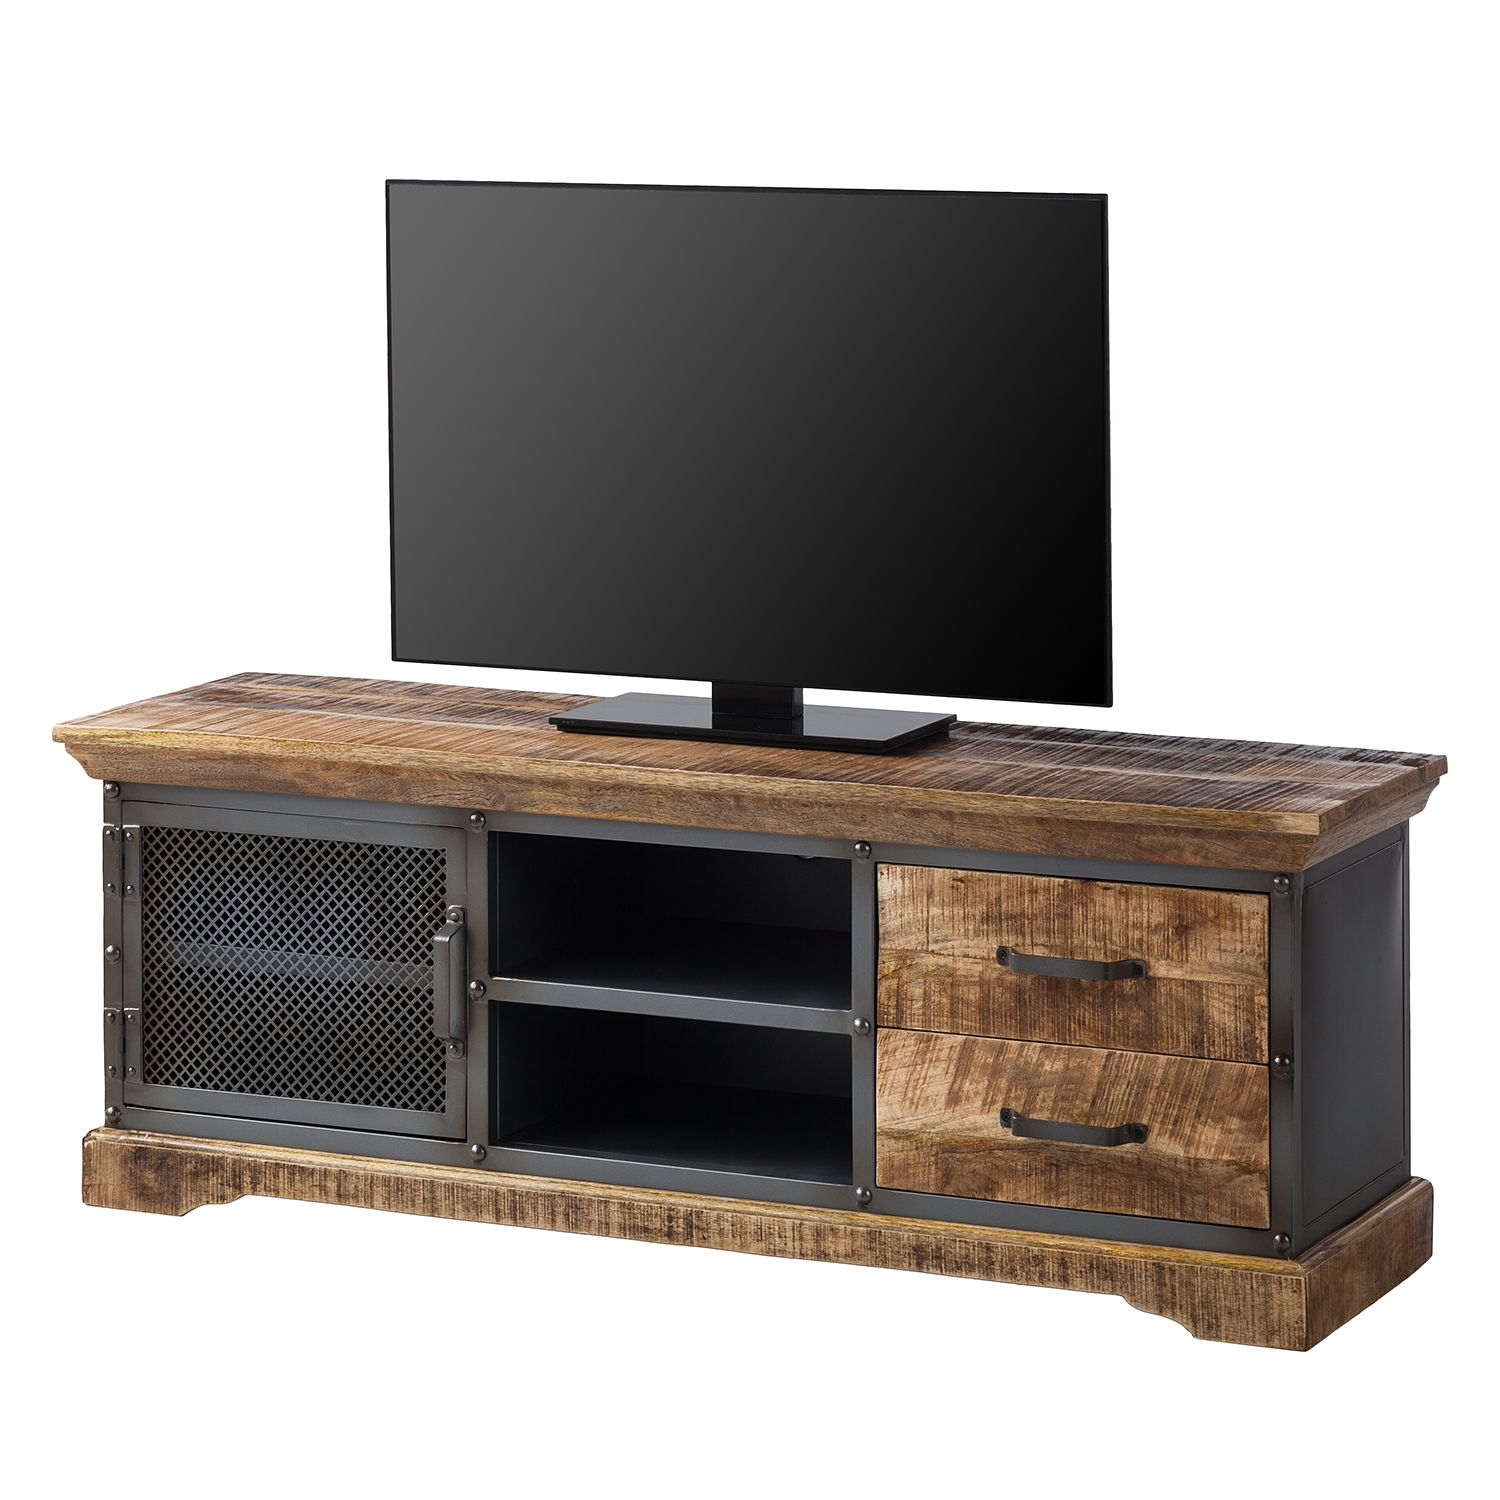 Natuzzi Couchtisch Glas Home24 Tv Lowboard Hunter